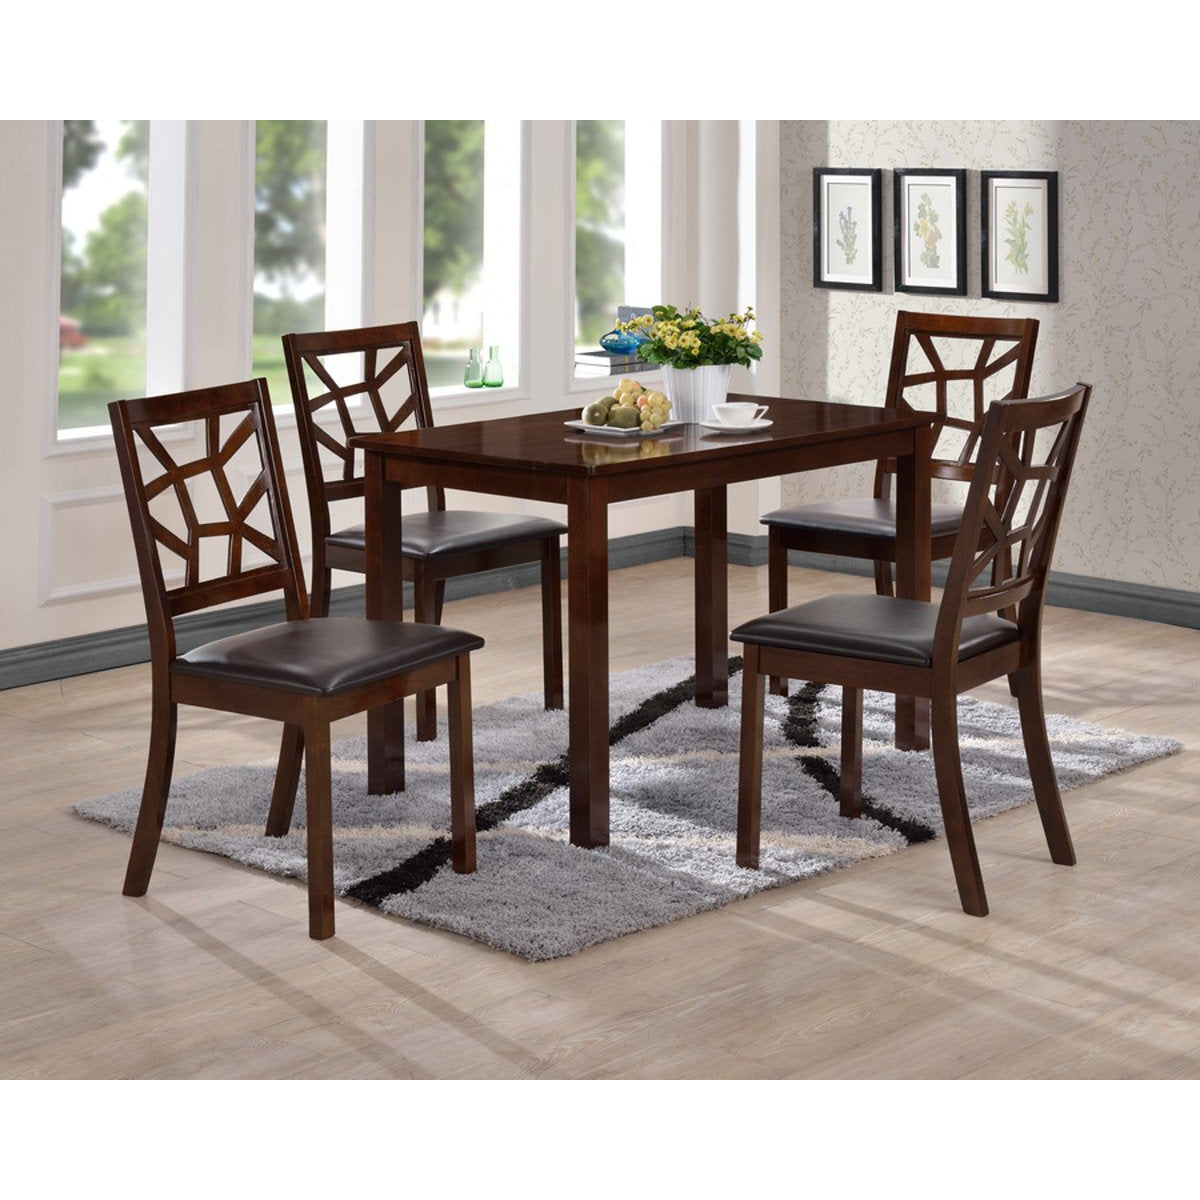 Baxton Studio Mozaika Black Leather Contemporary 5-Piece Dining Set Baxton Studio--Minimal And Modern - 1